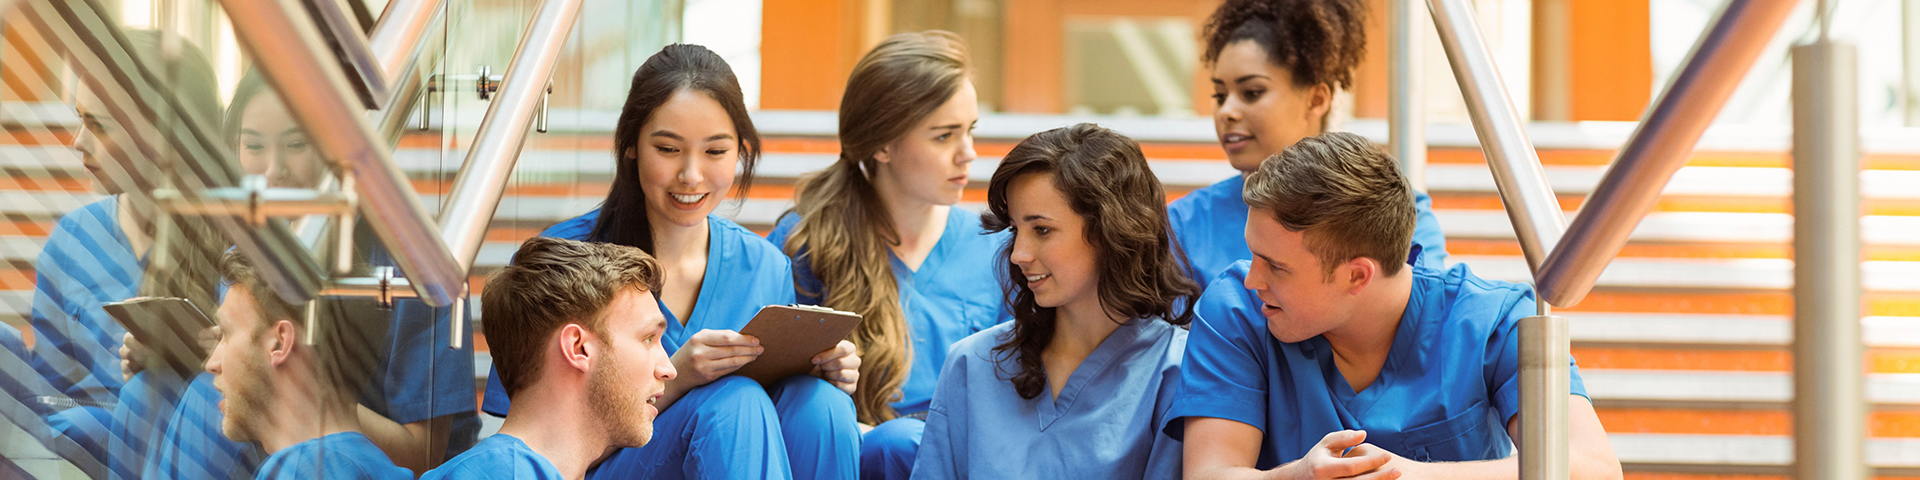 group of students in scrubs sitting on stairs